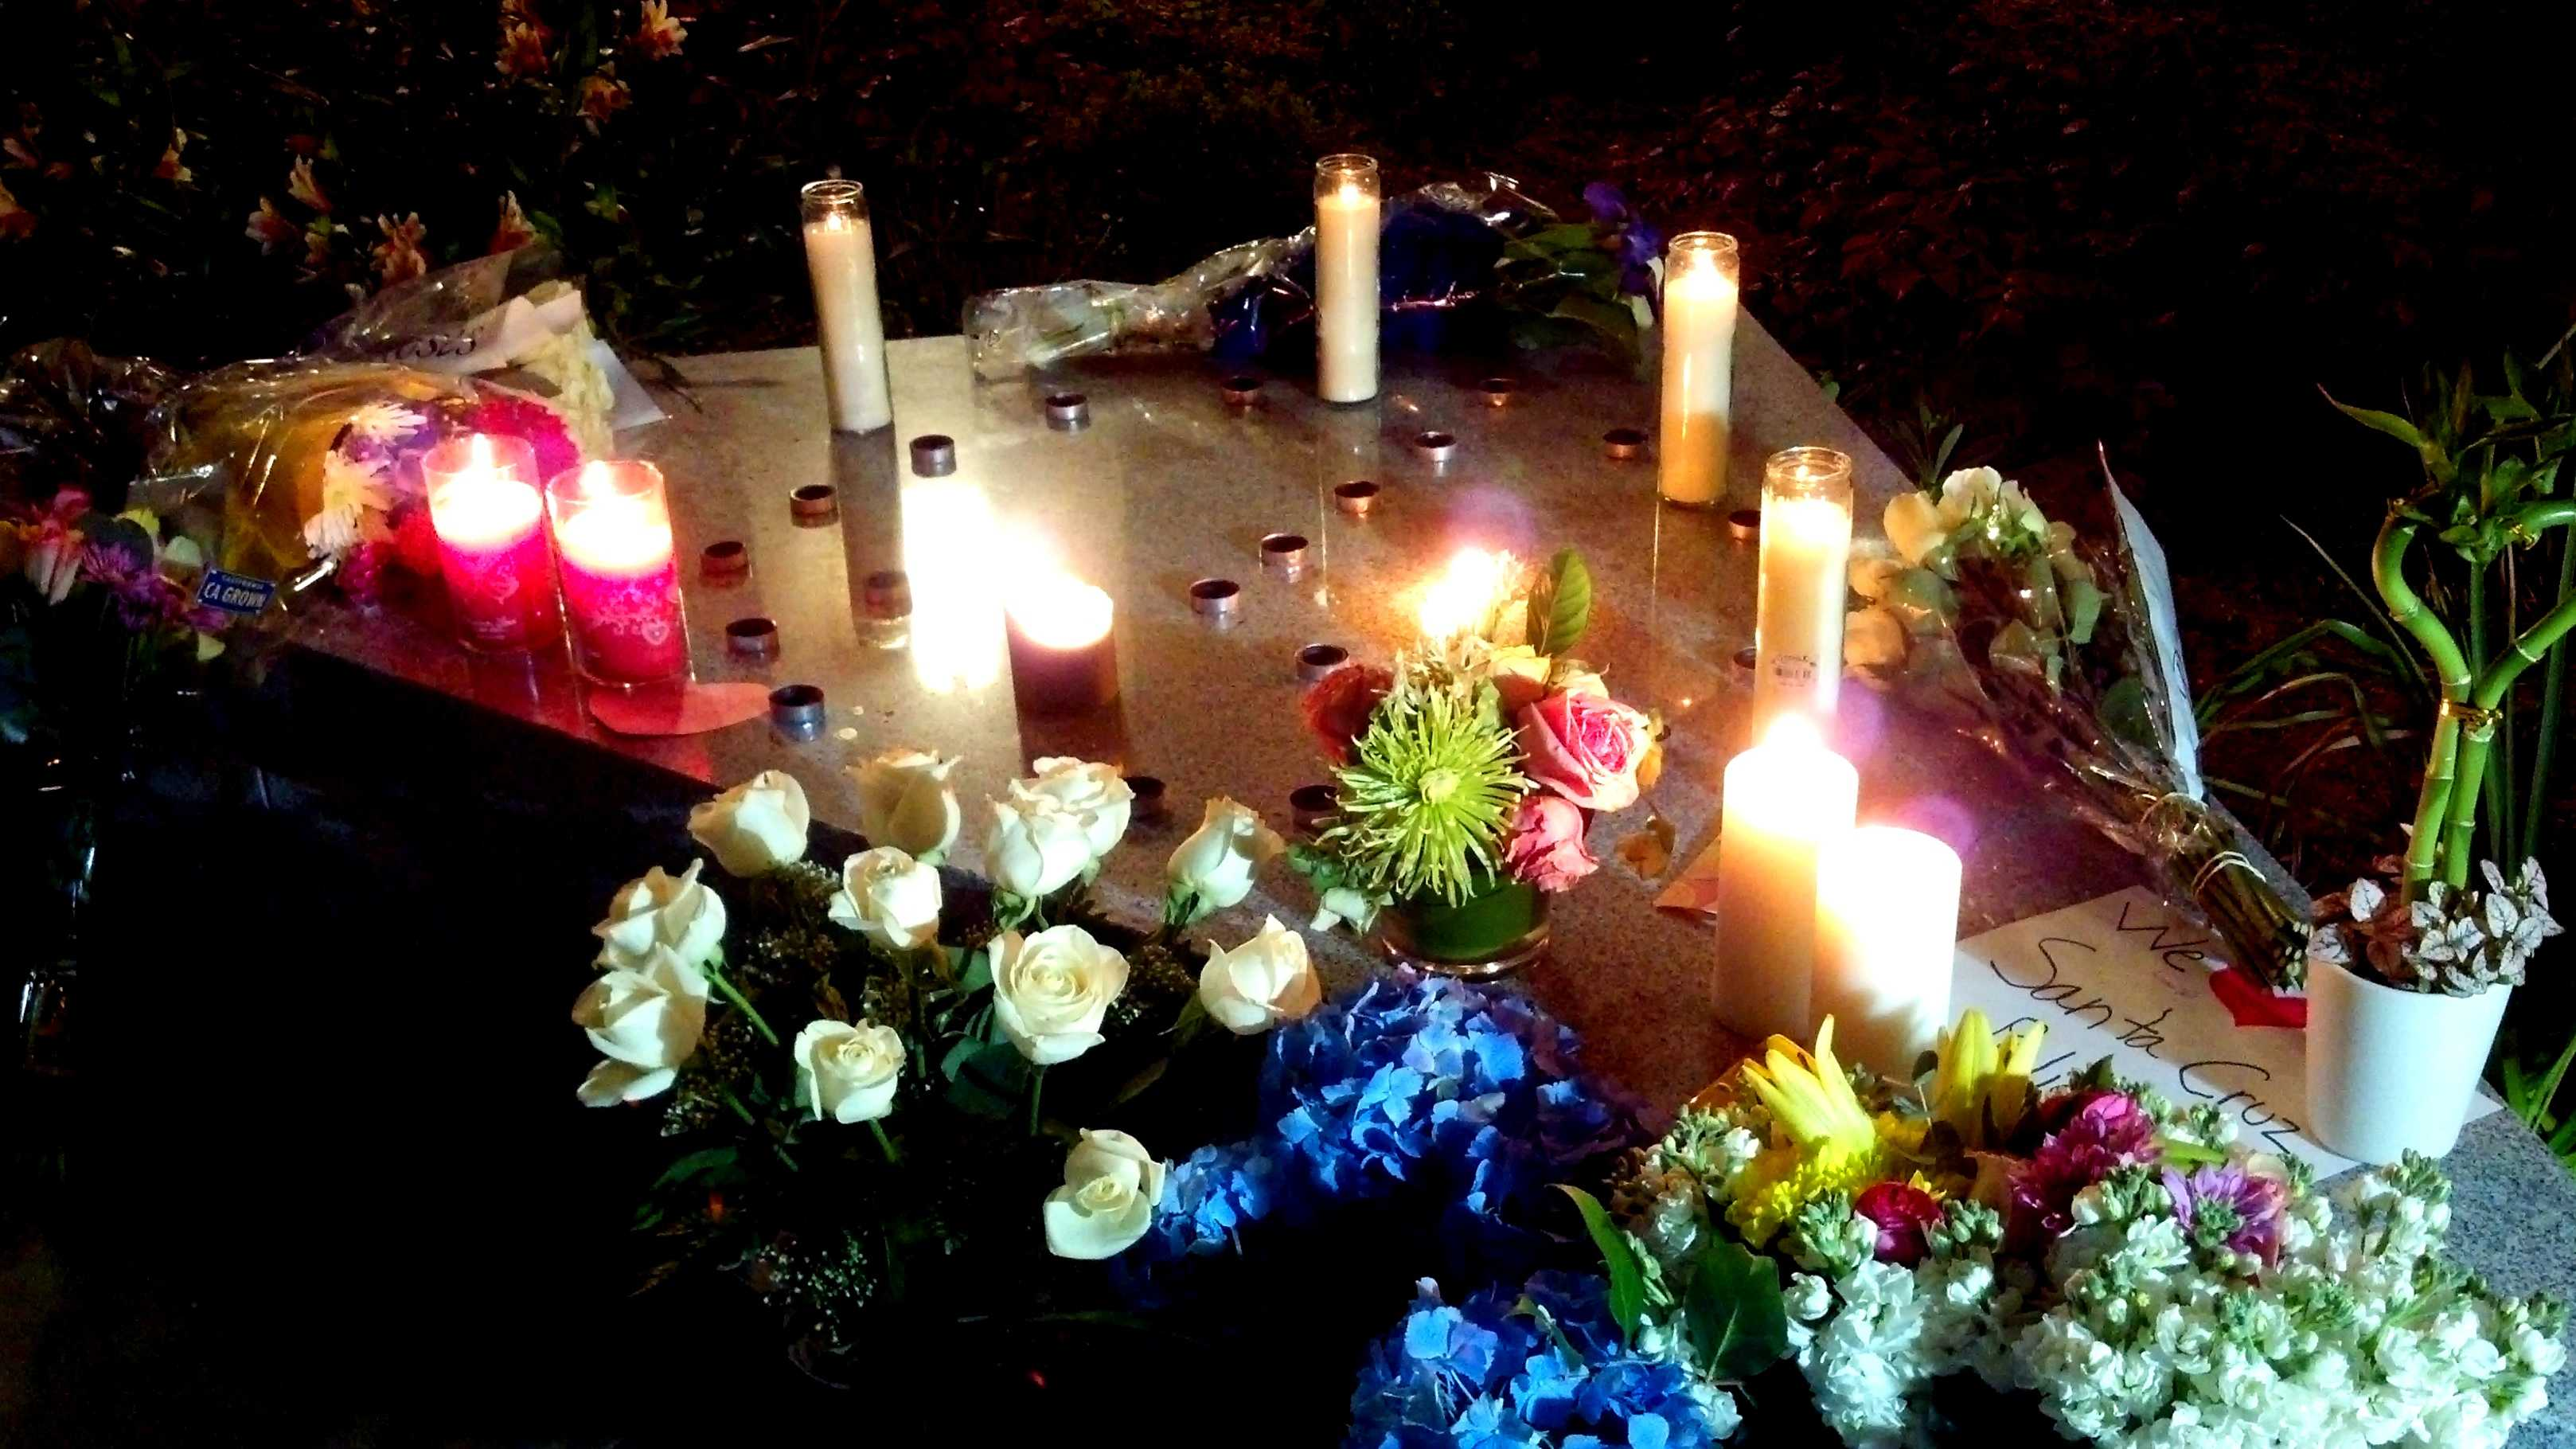 This memorial was built outside the Santa Cruz Police Station Tuesday night.